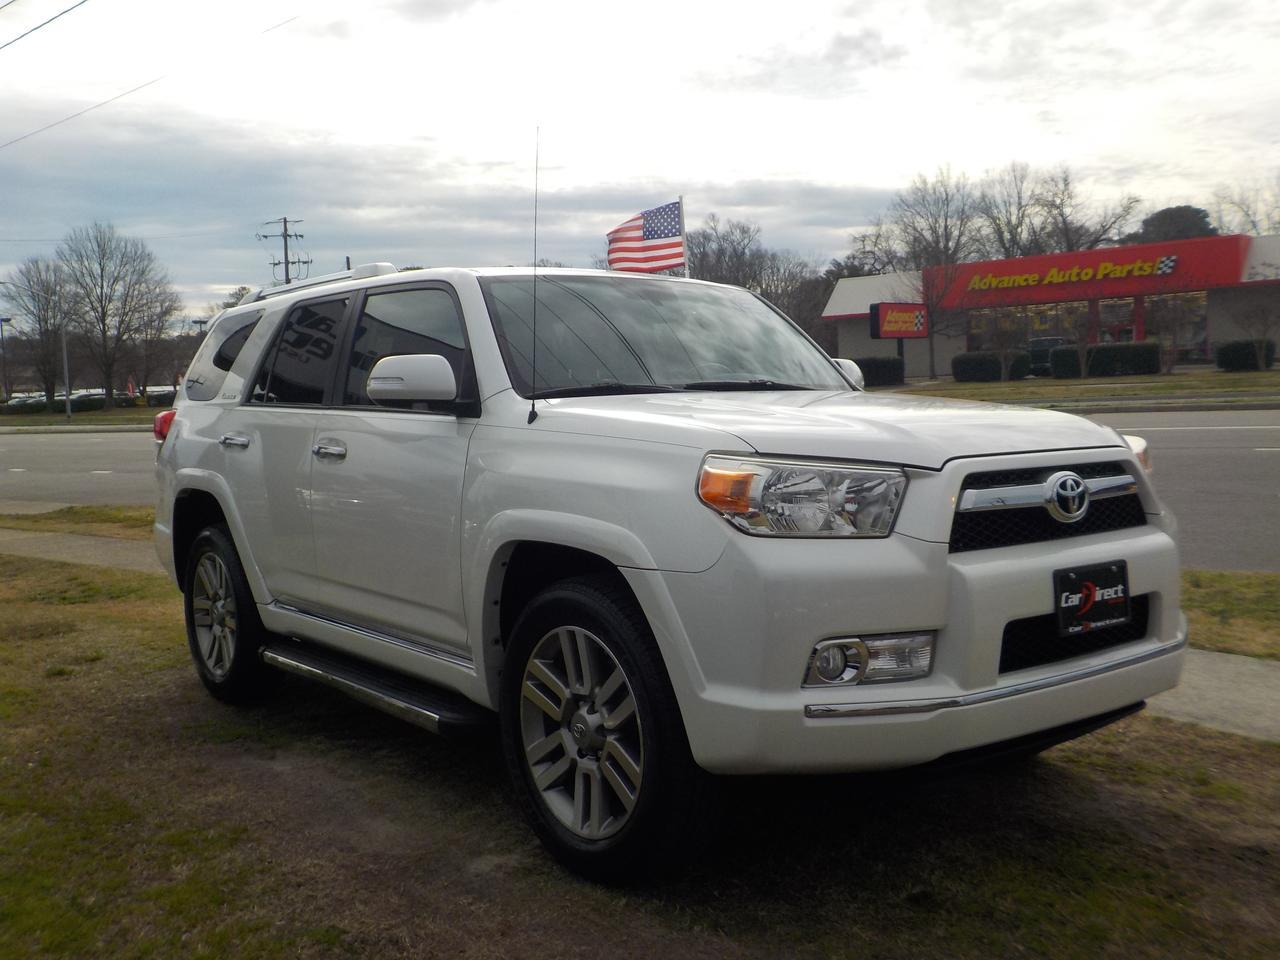 2010 TOYOTA 4RUNNER LIMITED 4X4, CARFAX 1 OWNER & LOW MILEAGE, SUNROOF, BACKUP CAMERA, TOW, ROOF RACKS, RUNNING BOARDS! Virginia Beach VA